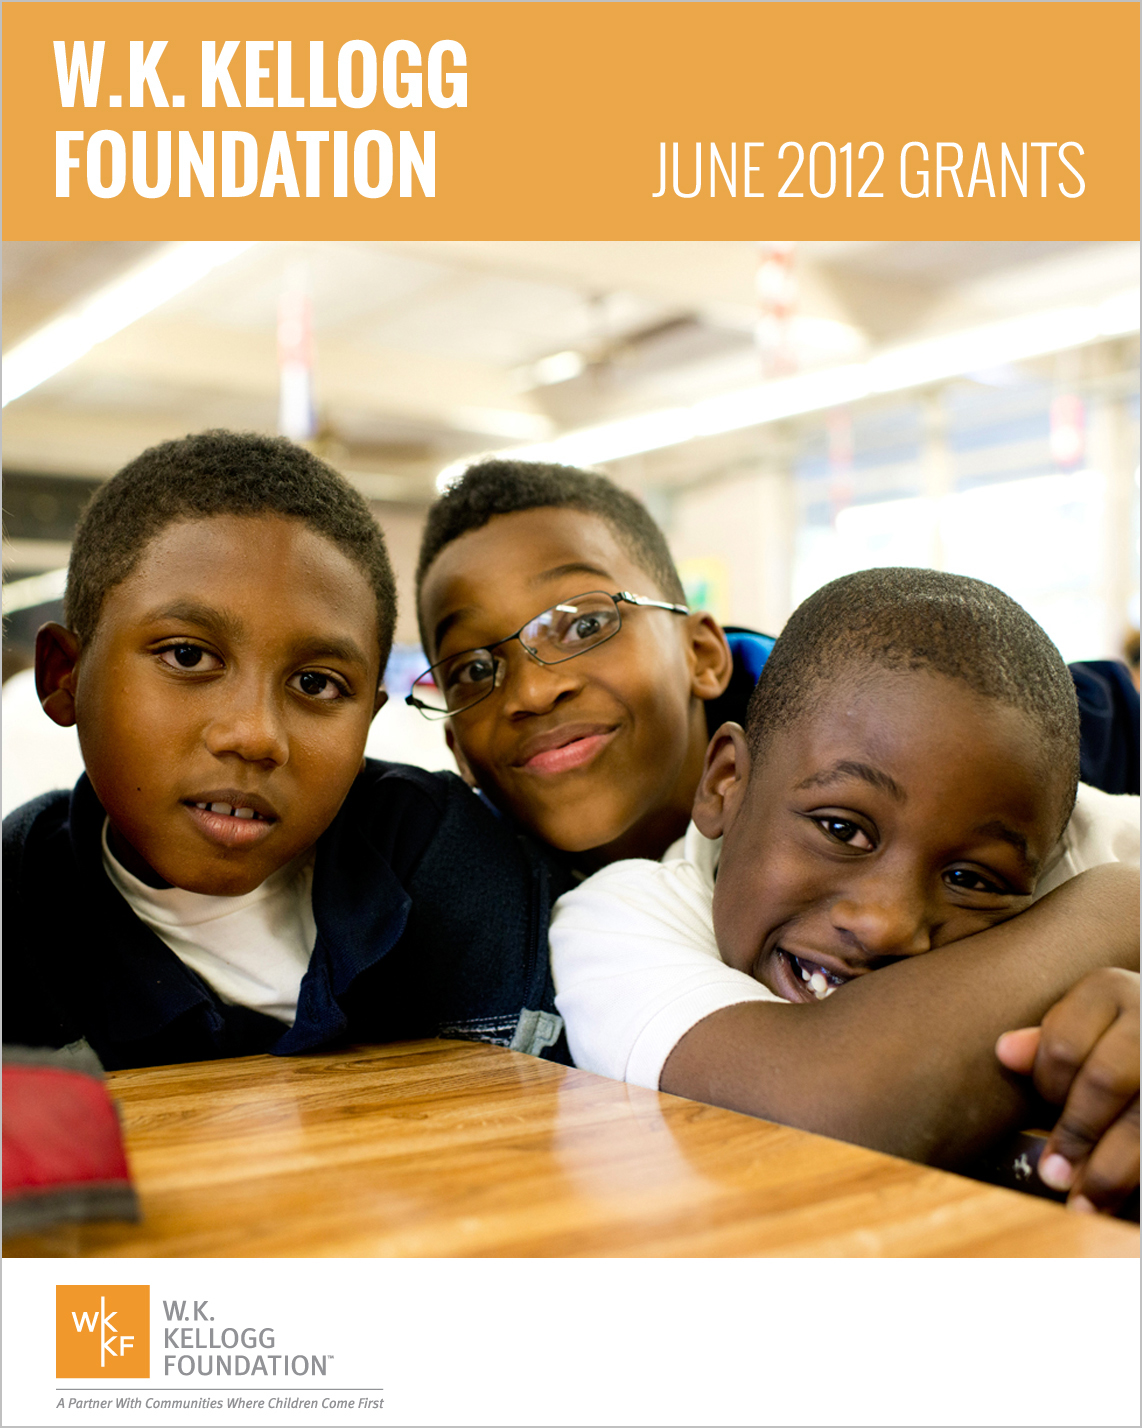 W.K. Kellogg Foundation Grants - June 2012